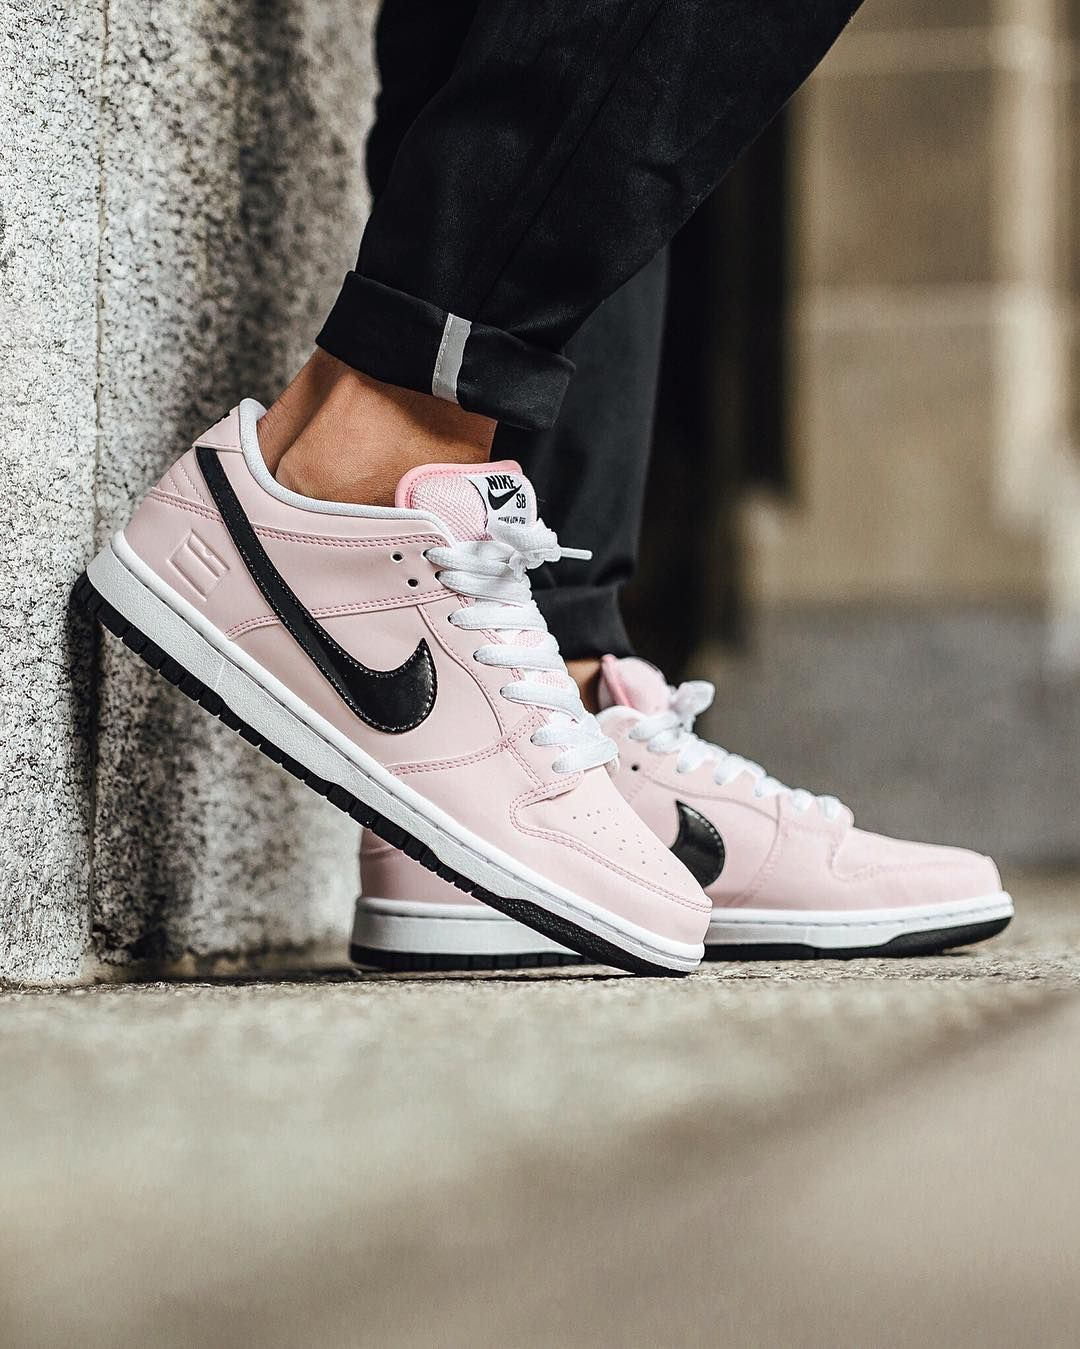 61adb911a89 Nike SB Dunk Low Elite